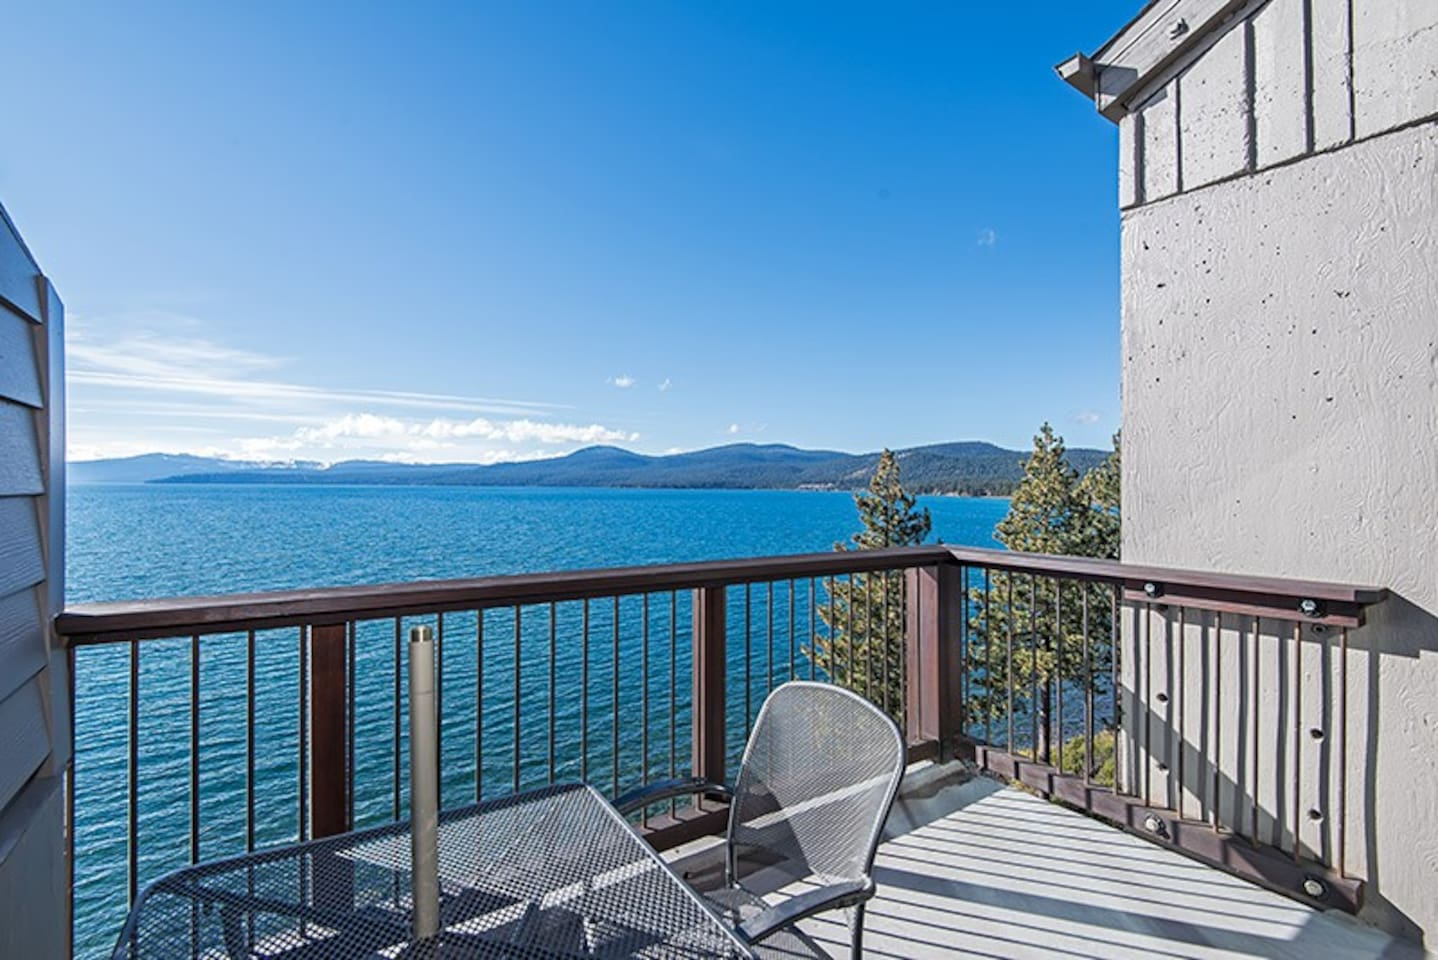 Welcome to Kings Beach! This 7th floor penthouse is professionally managed by TurnKey Vacation Rentals.